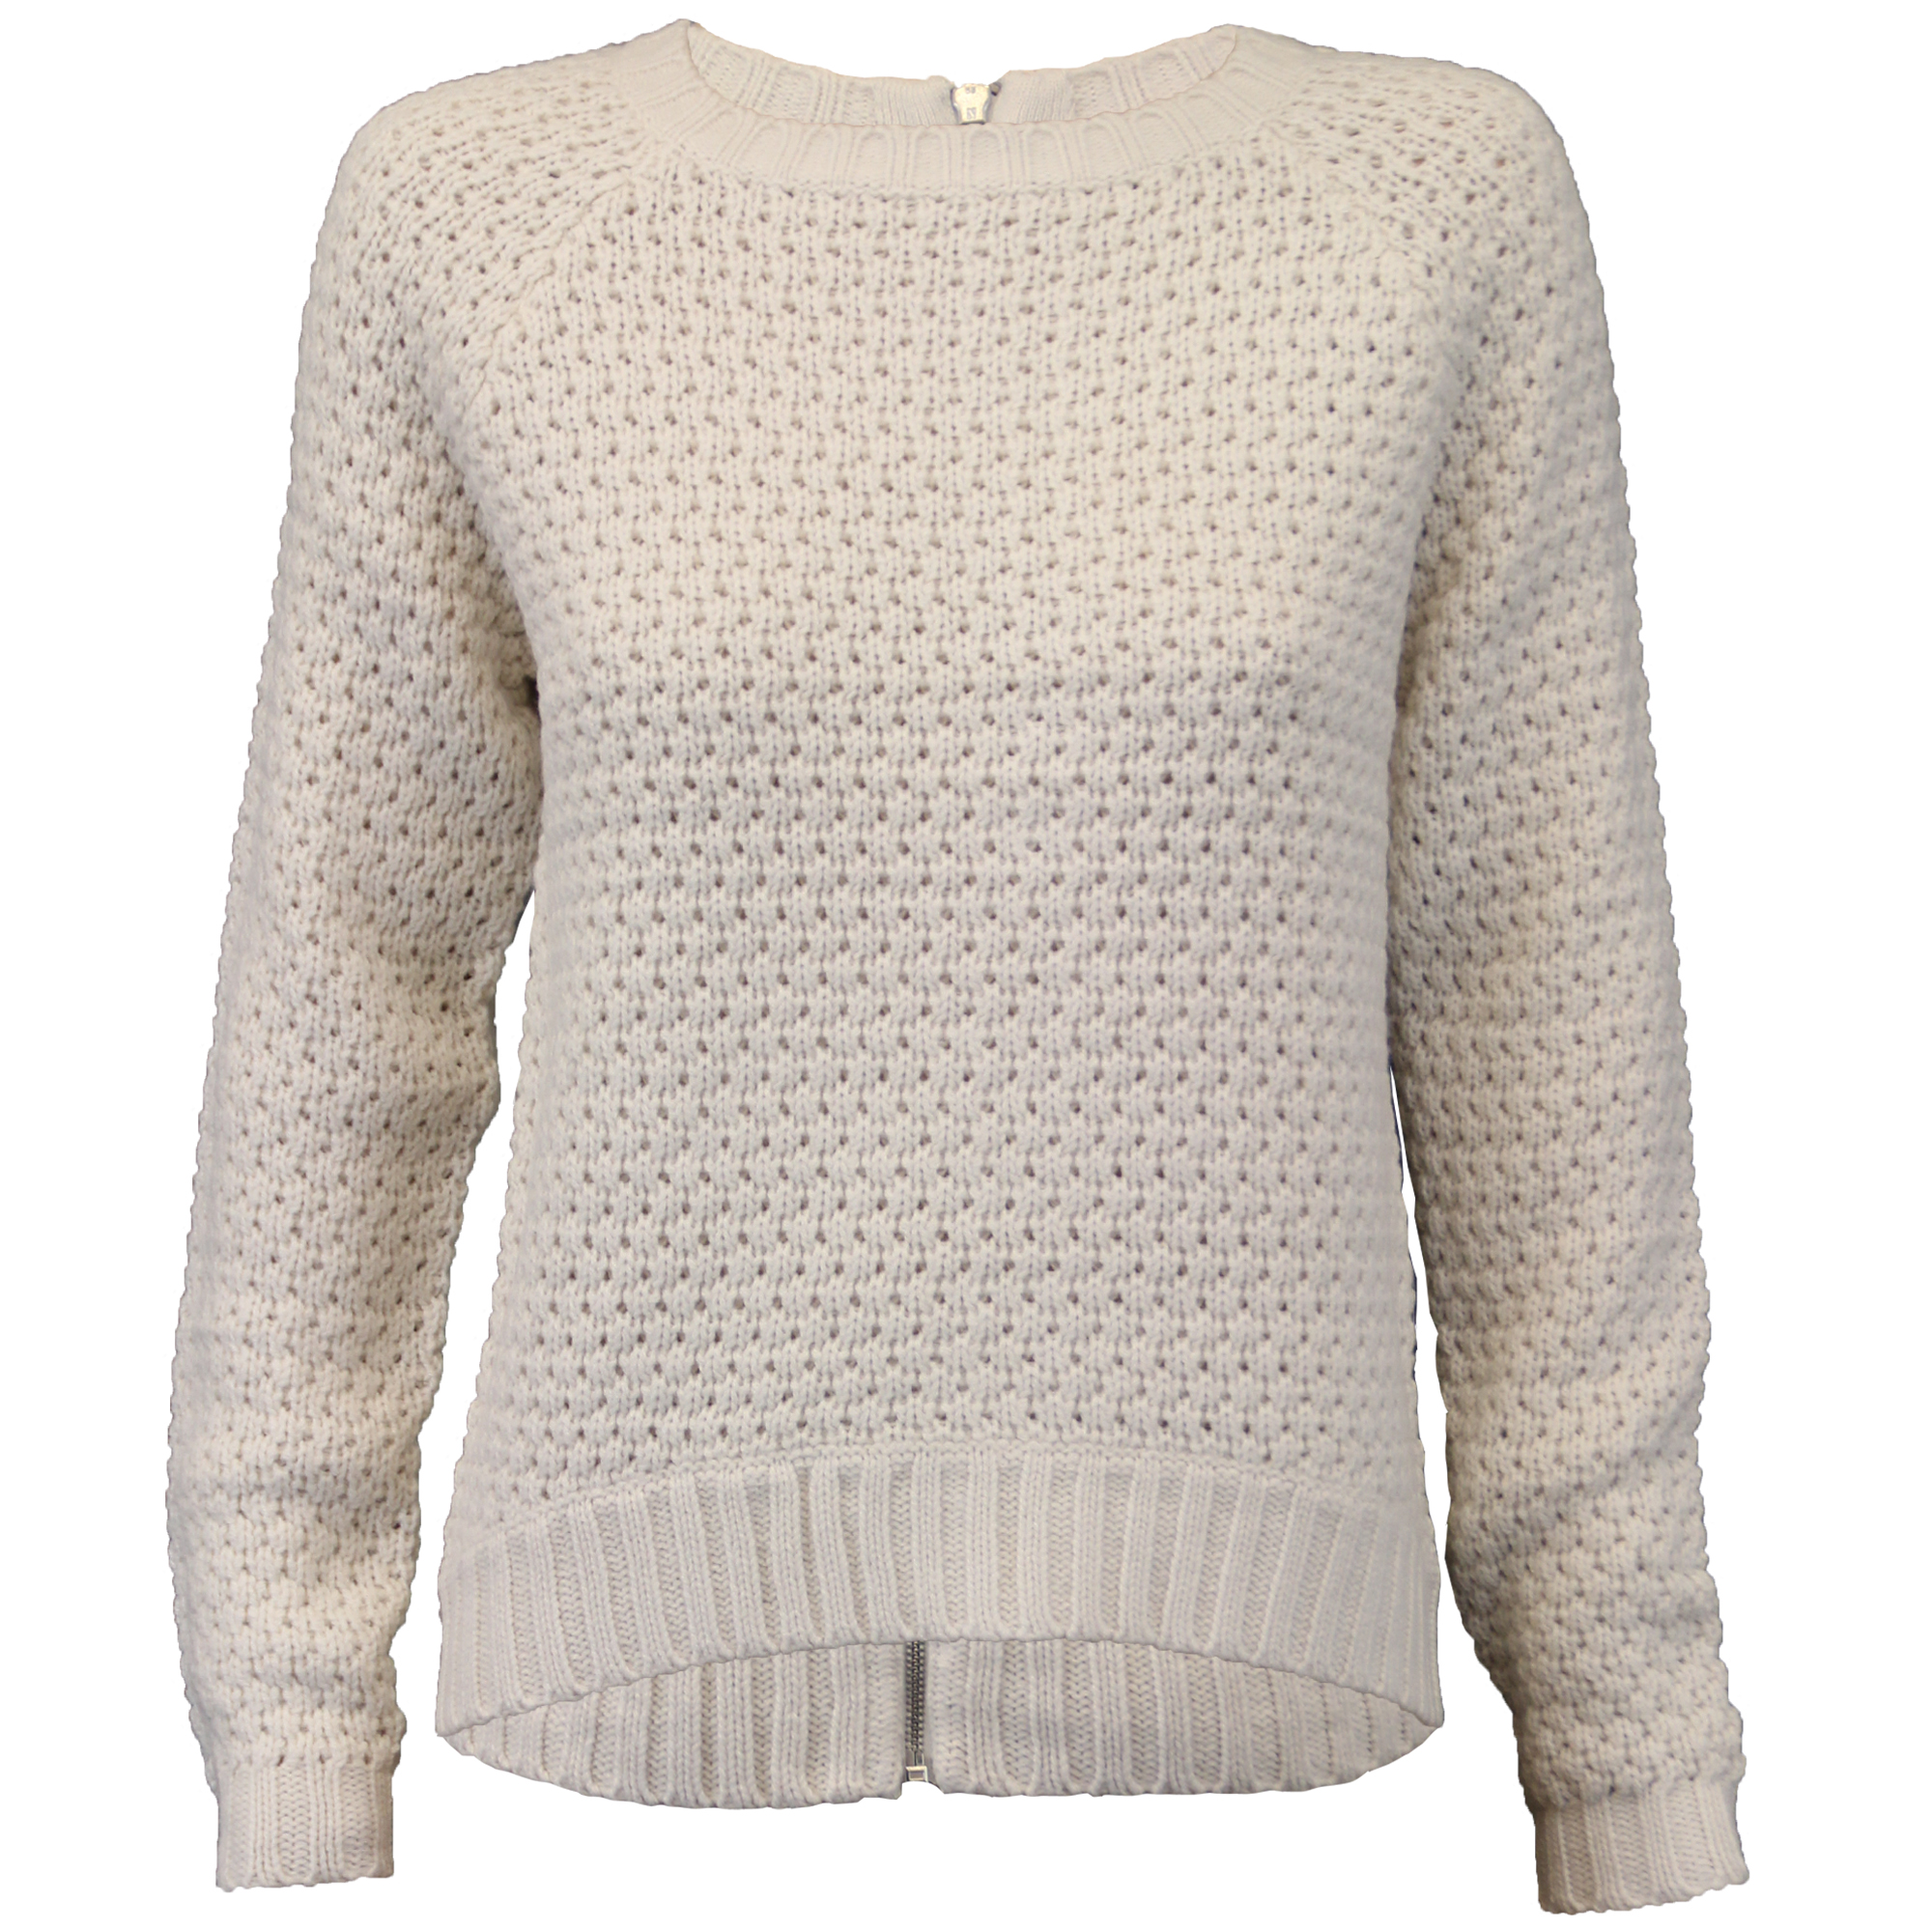 95b5c923cba7 ladies jumpers womens knitted pullover top crew neck waffle zip party  winter new